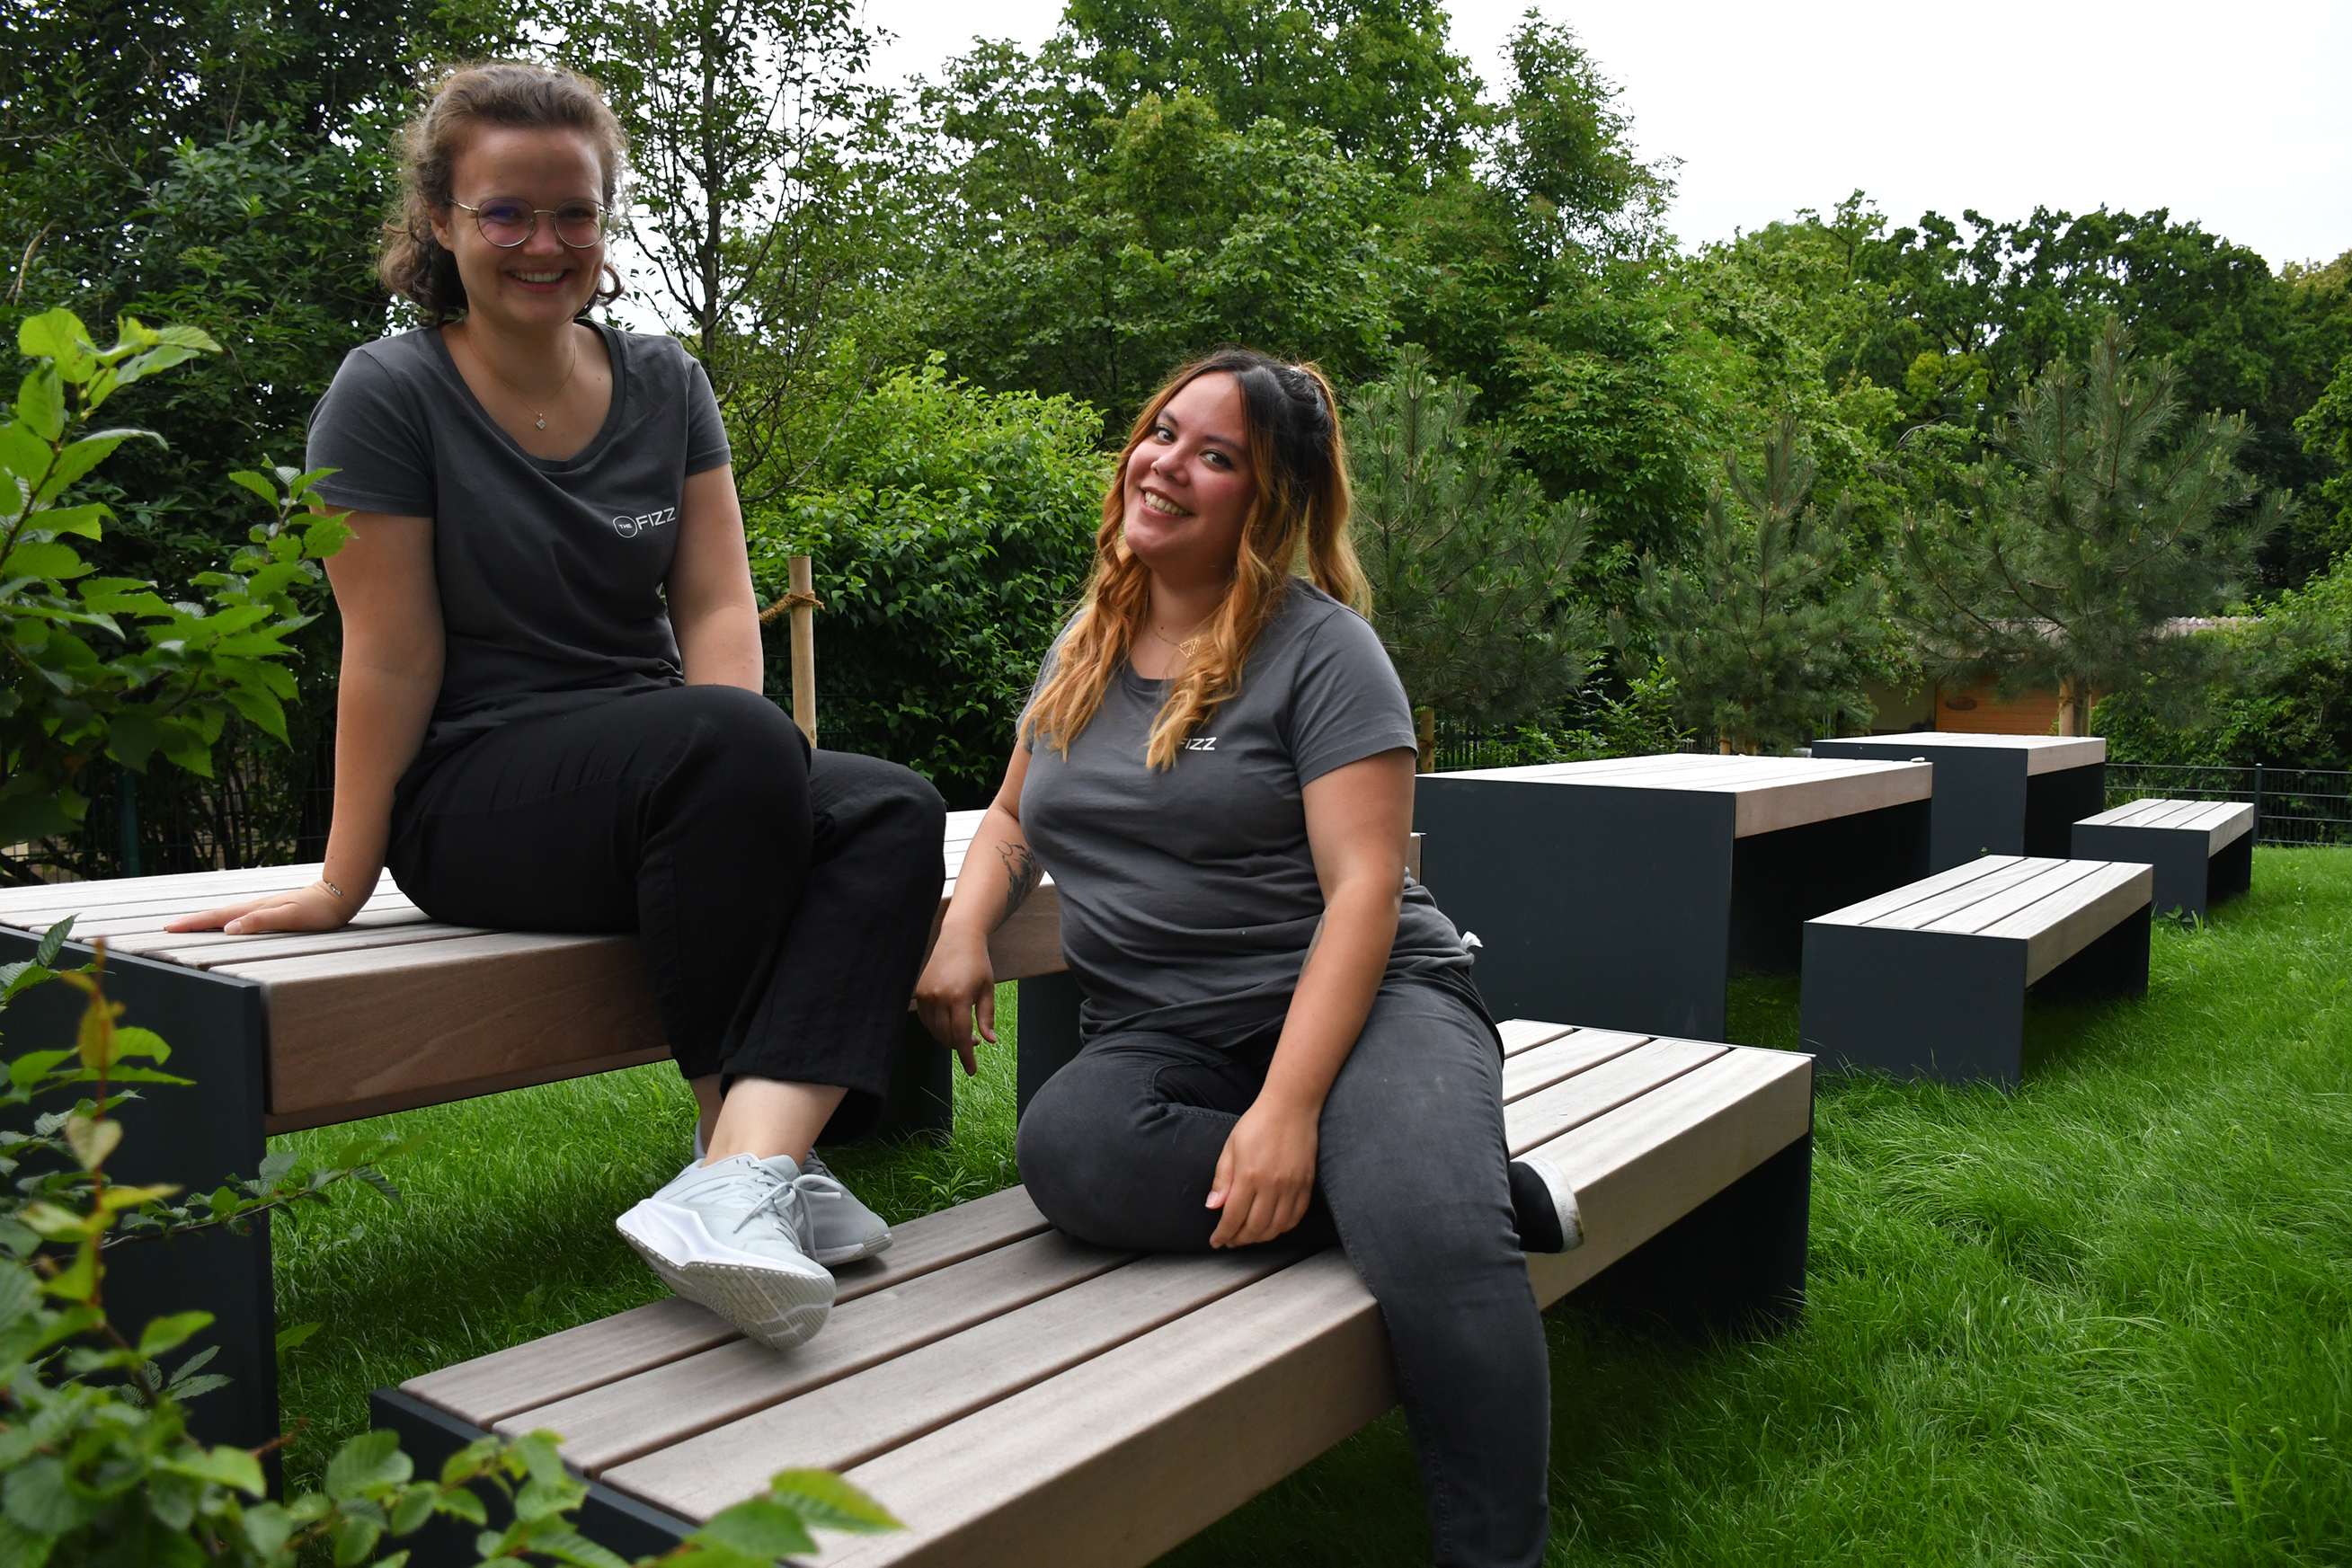 Two girls are sitting casually on a bench outside, surrounded by trees and green. One girl is sitting on the table, the other  on the bench beside. They both look into the camera, smiling.